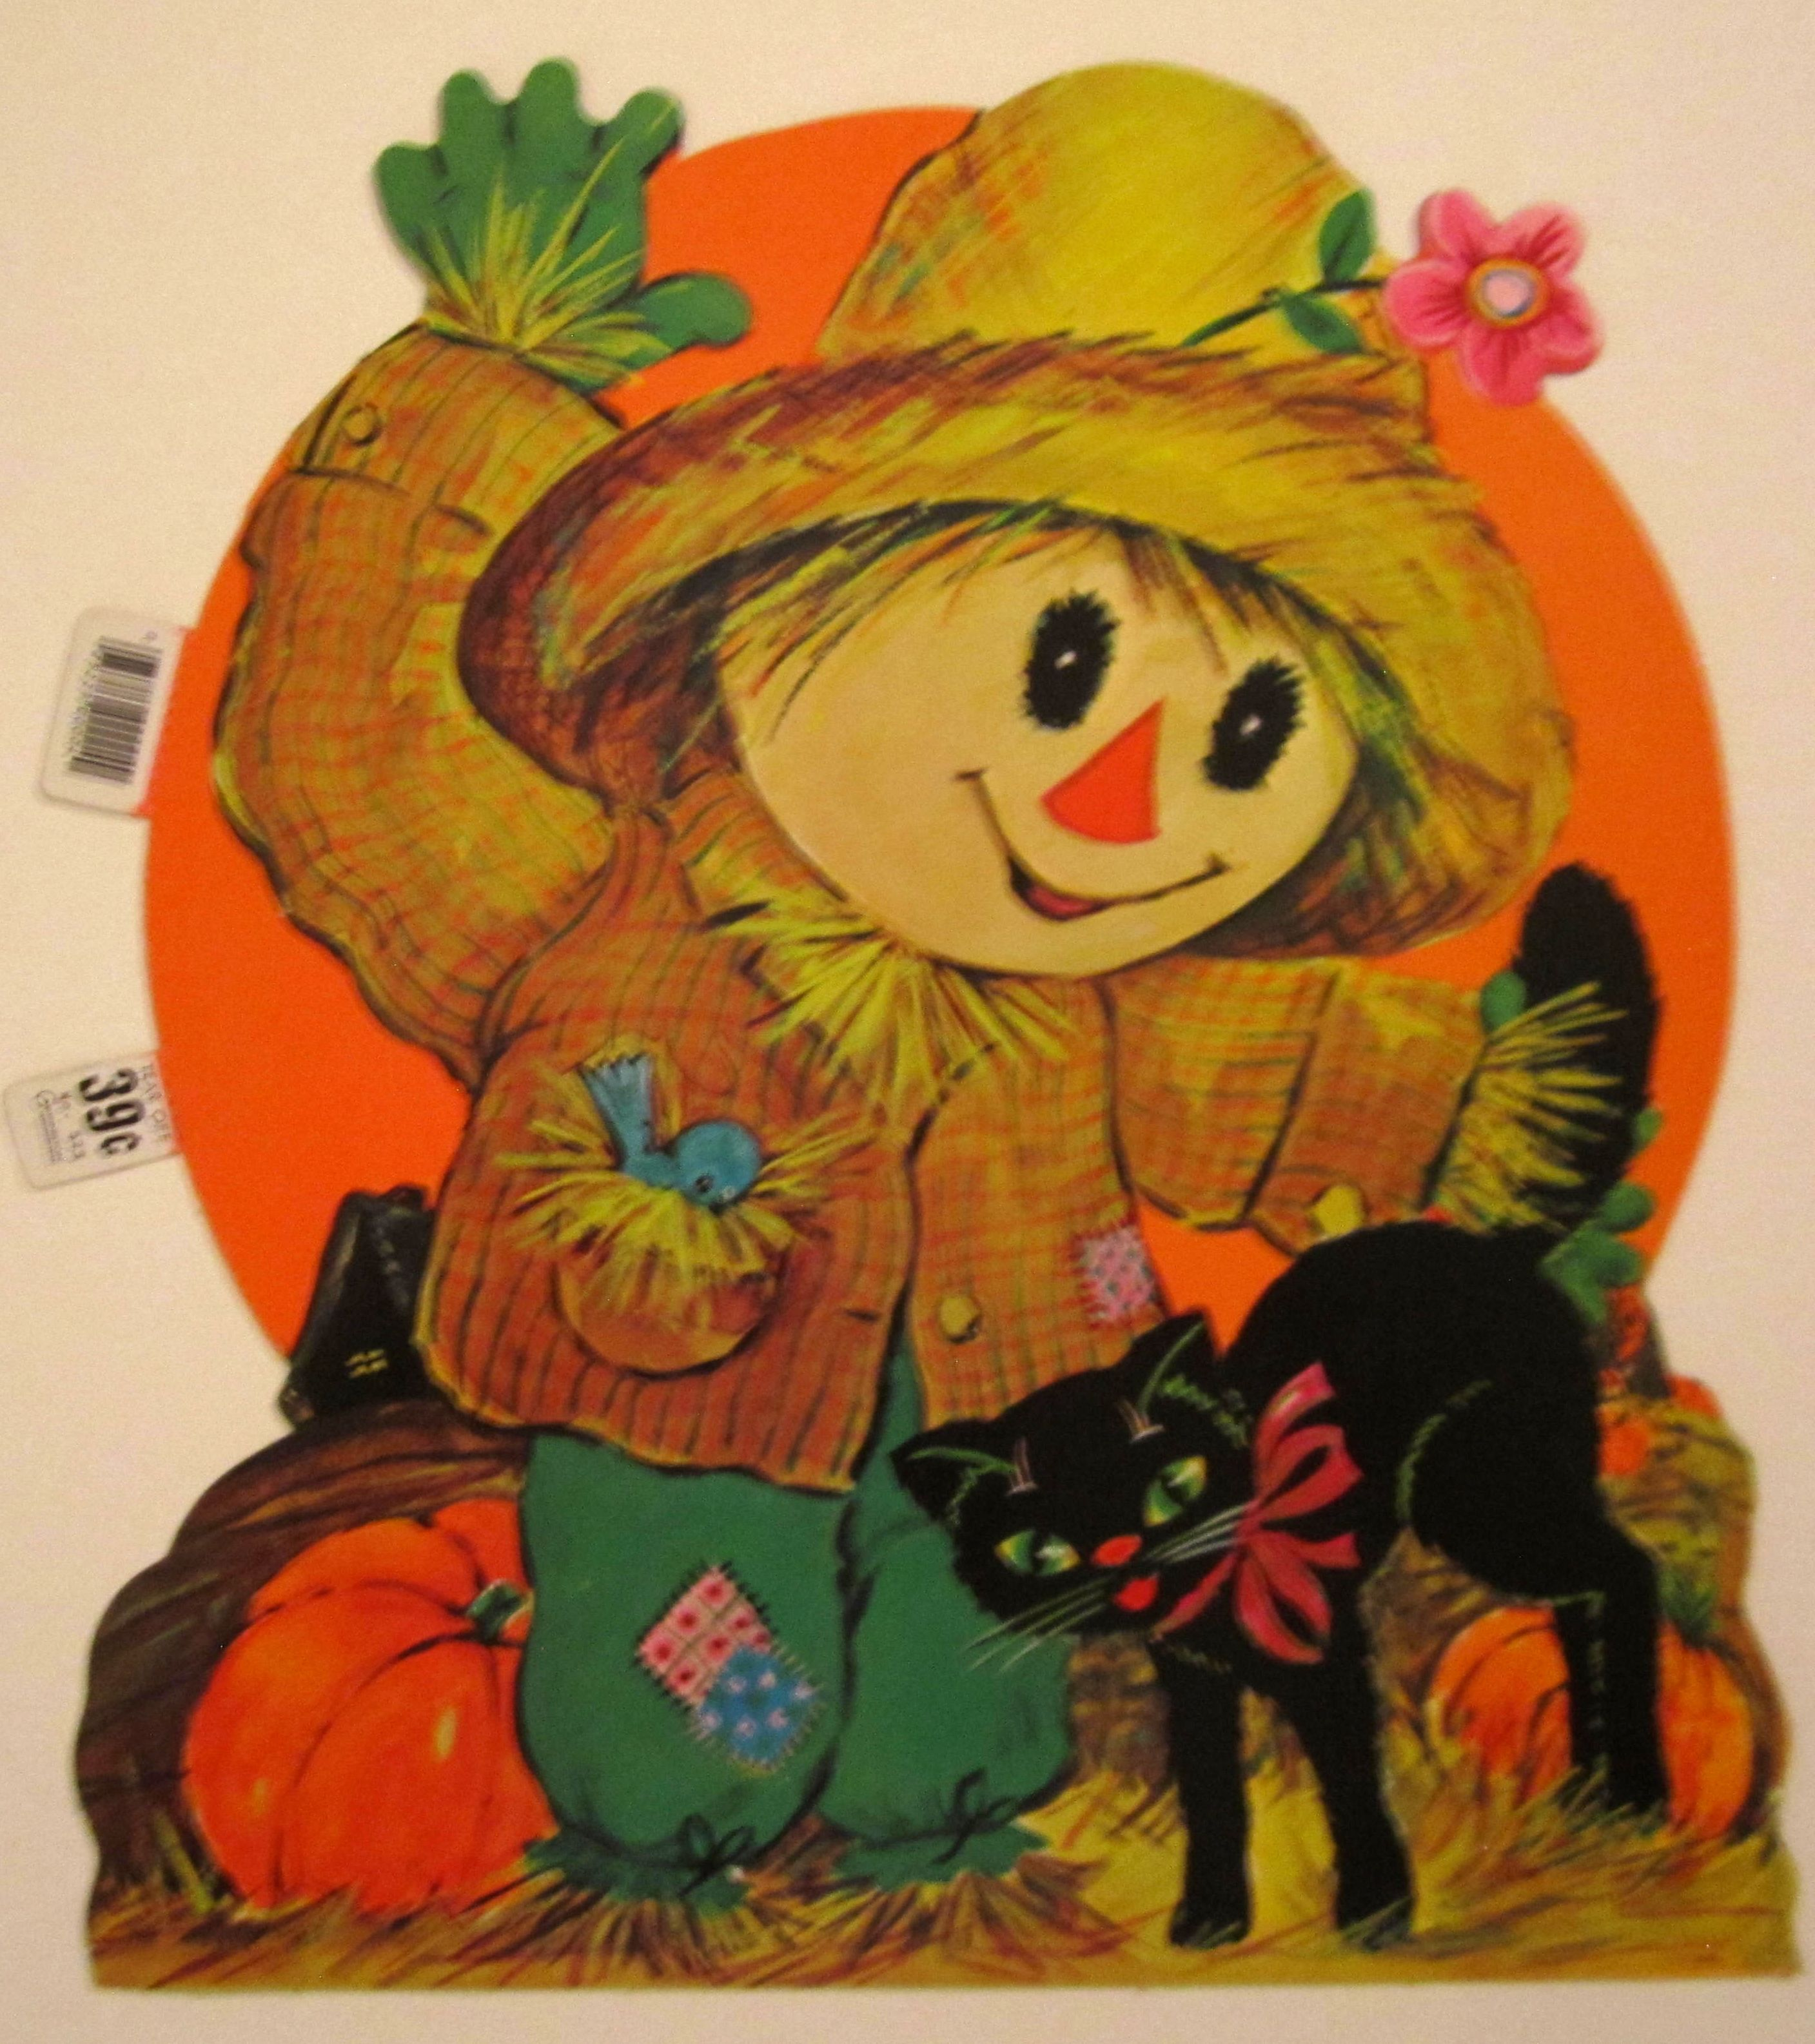 Vintage Halloween Decoration Made By Carrington Early 1980 S 1982 83 Vintage Halloween Cards Vintage Halloween Halloween Full Moon